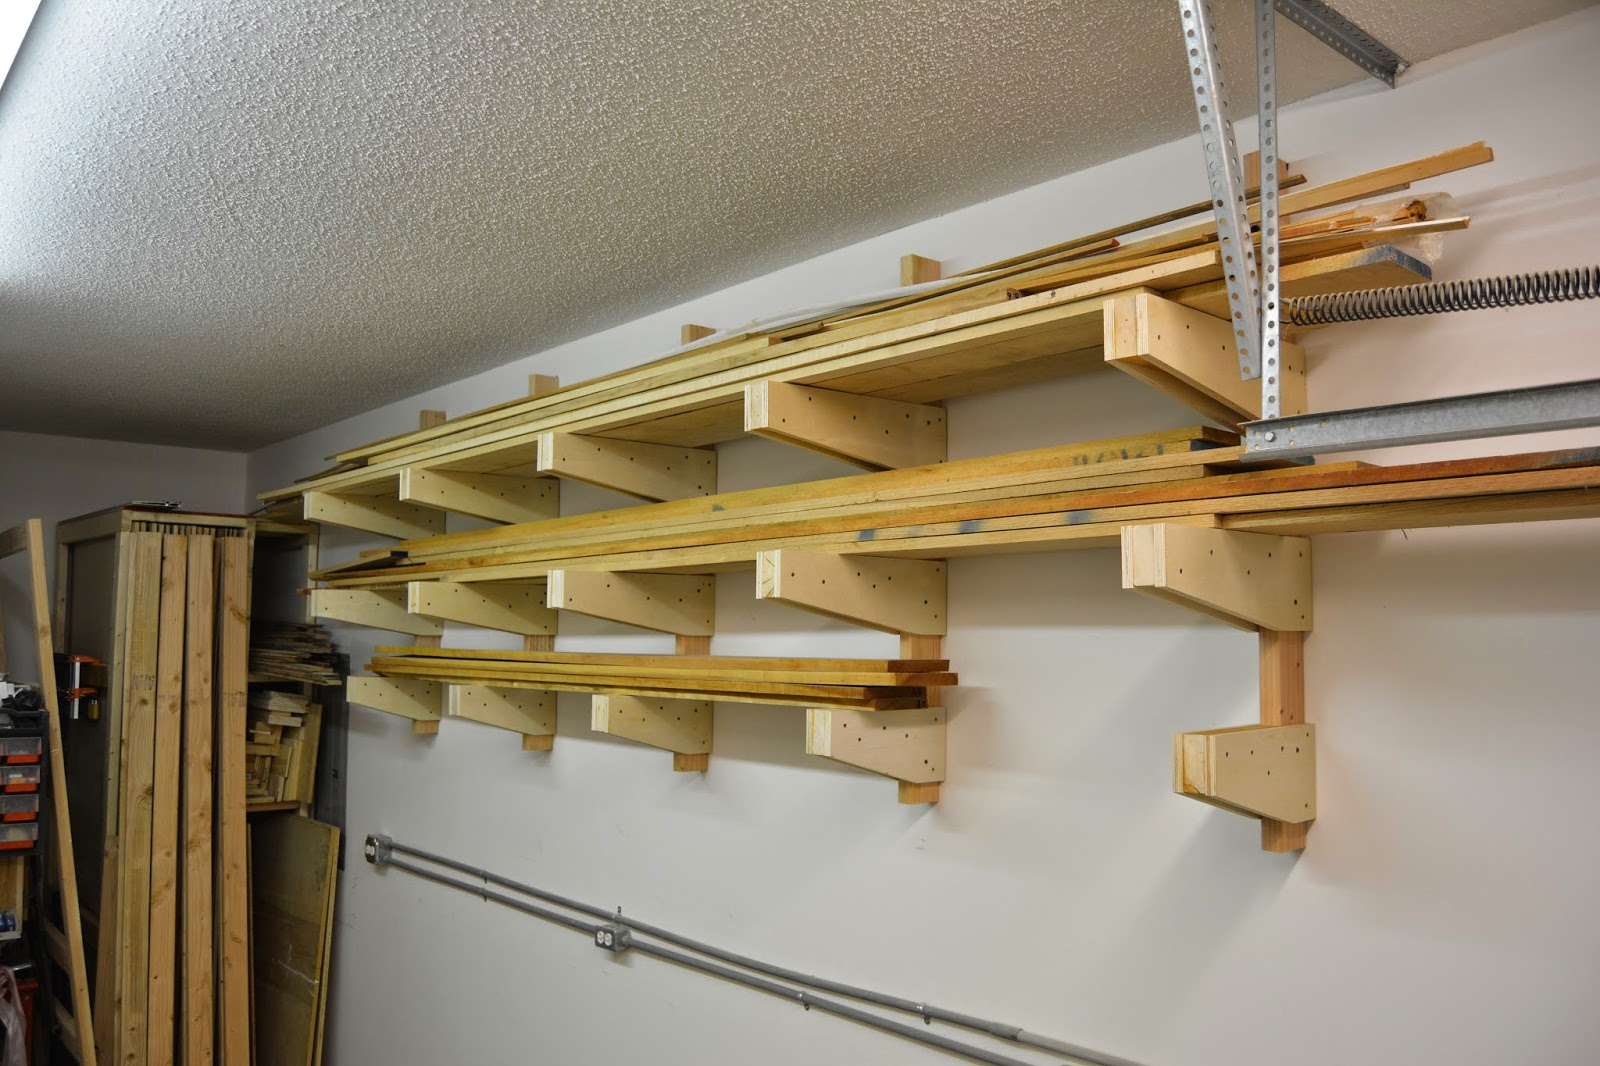 Ana White | Lumber Rack - DIY Projects